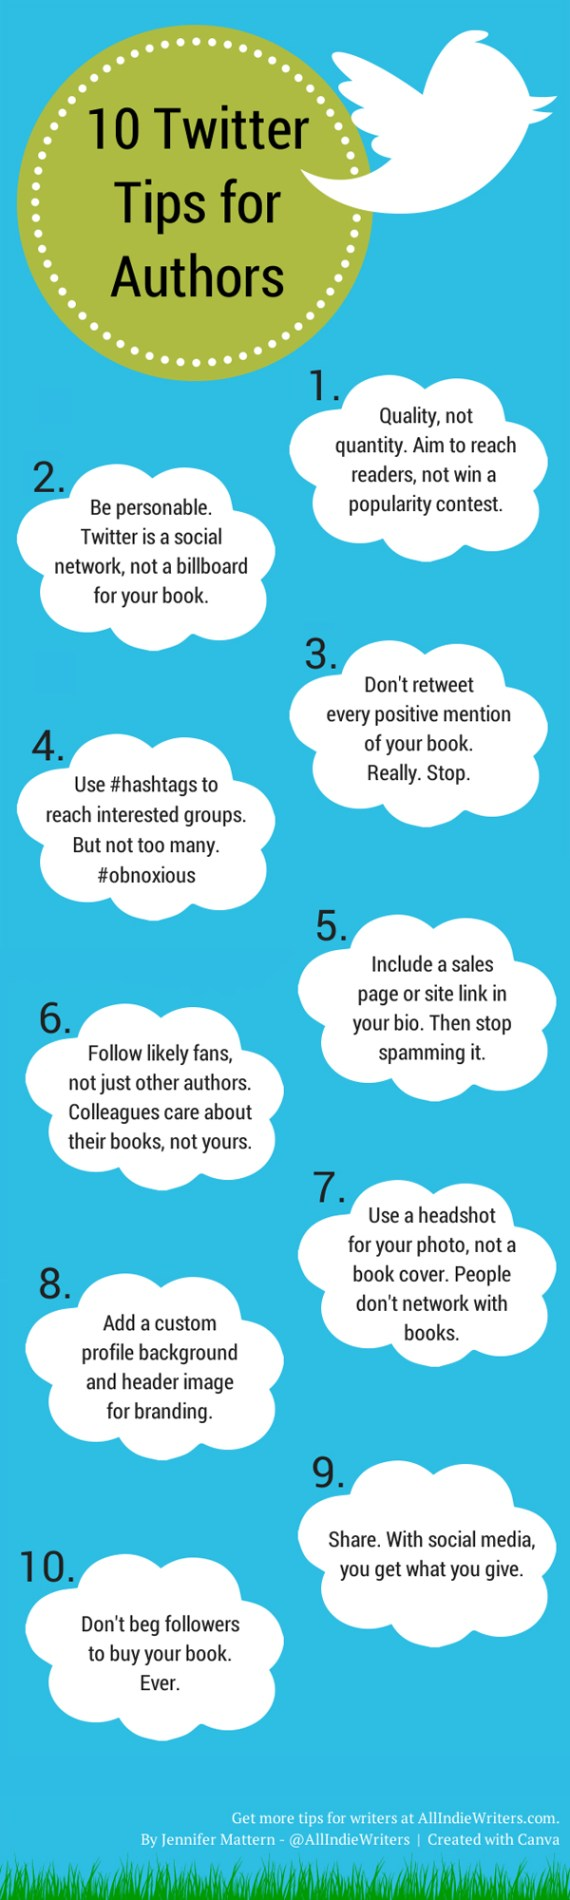 10 Twitter Tips for Authors